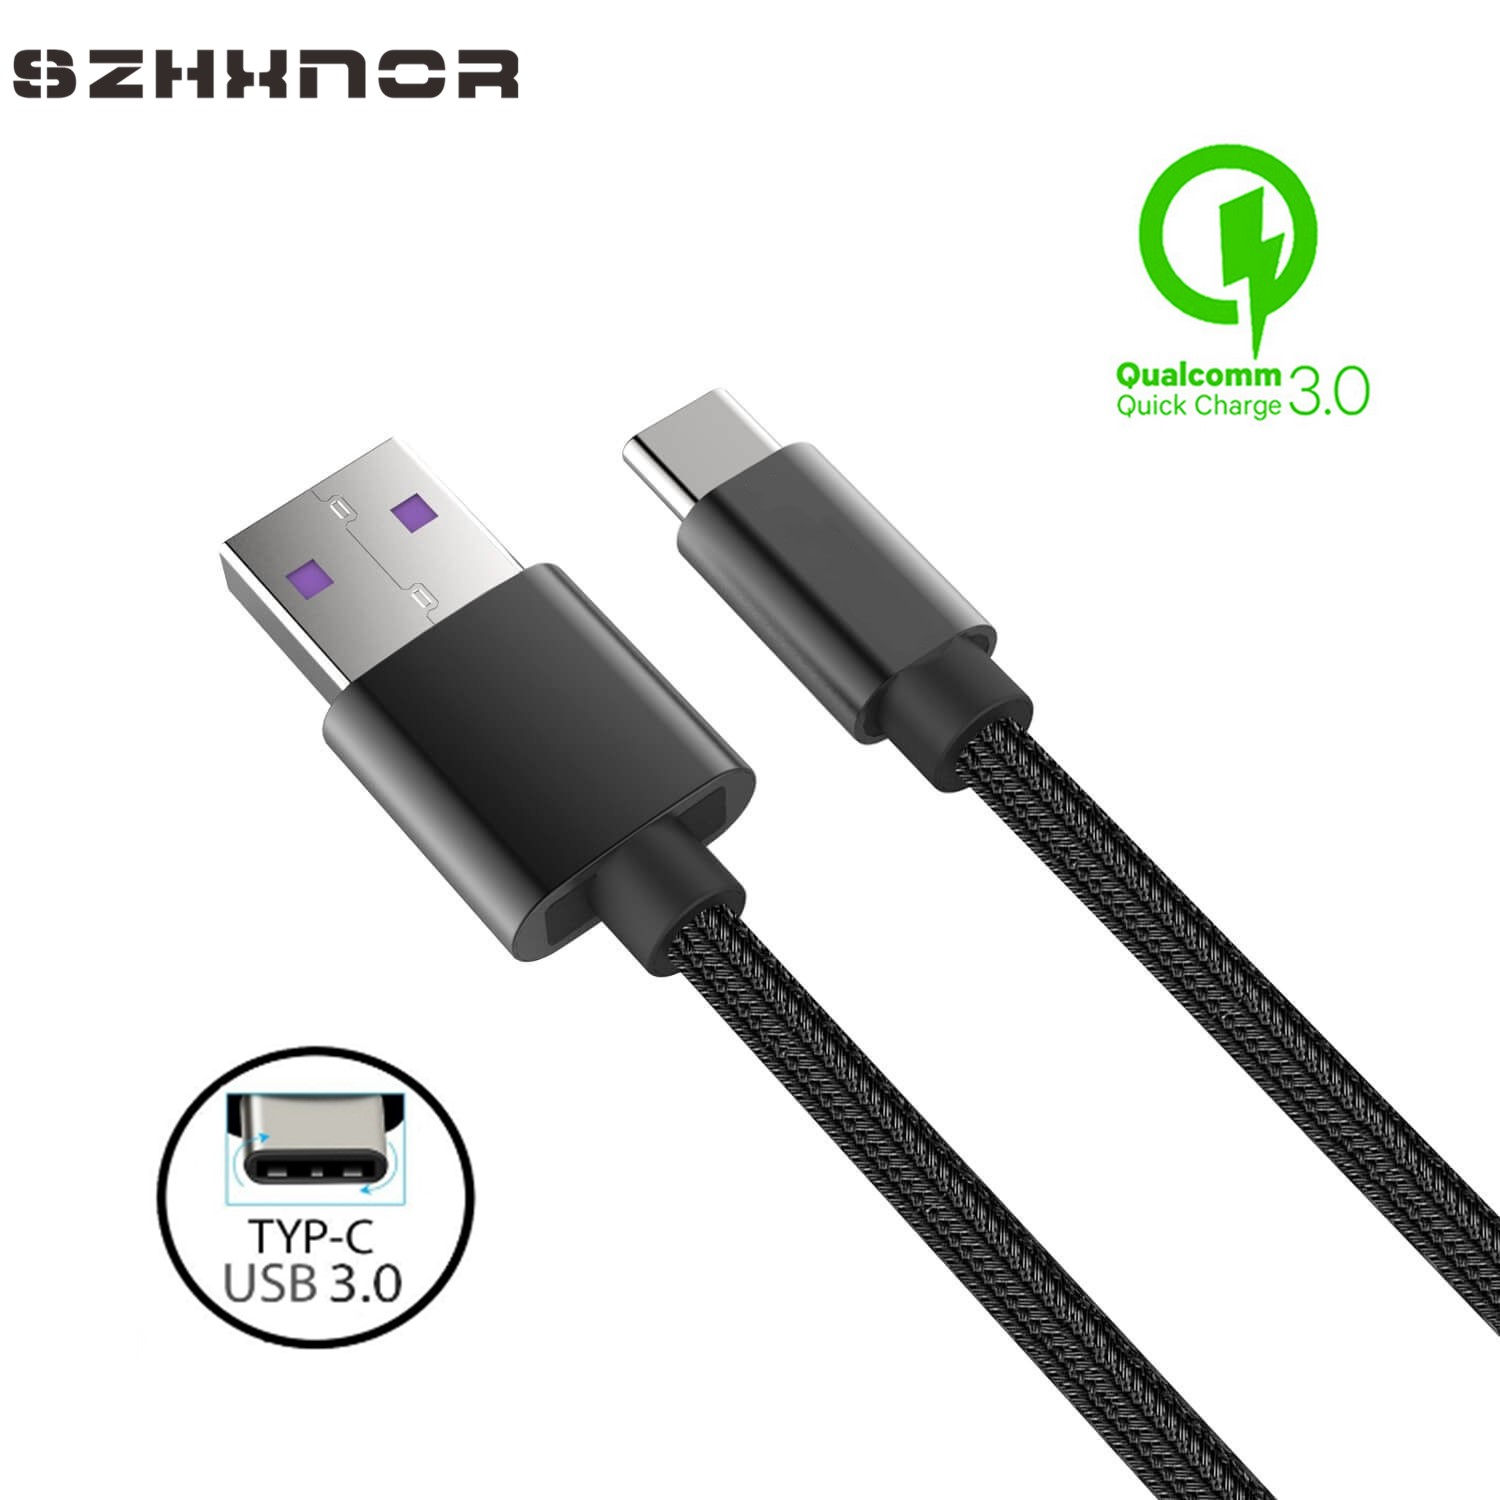 Cellphones & Telecommunications Usb Type C Male To Micro Usb Female Adapter Charger For Sony Xperia L1 L2 R1 Xz Xzs Xz1 Xz2 Premium X Compact Xa1 Plus Xa2 Ultra Complete In Specifications Mobile Phone Accessories